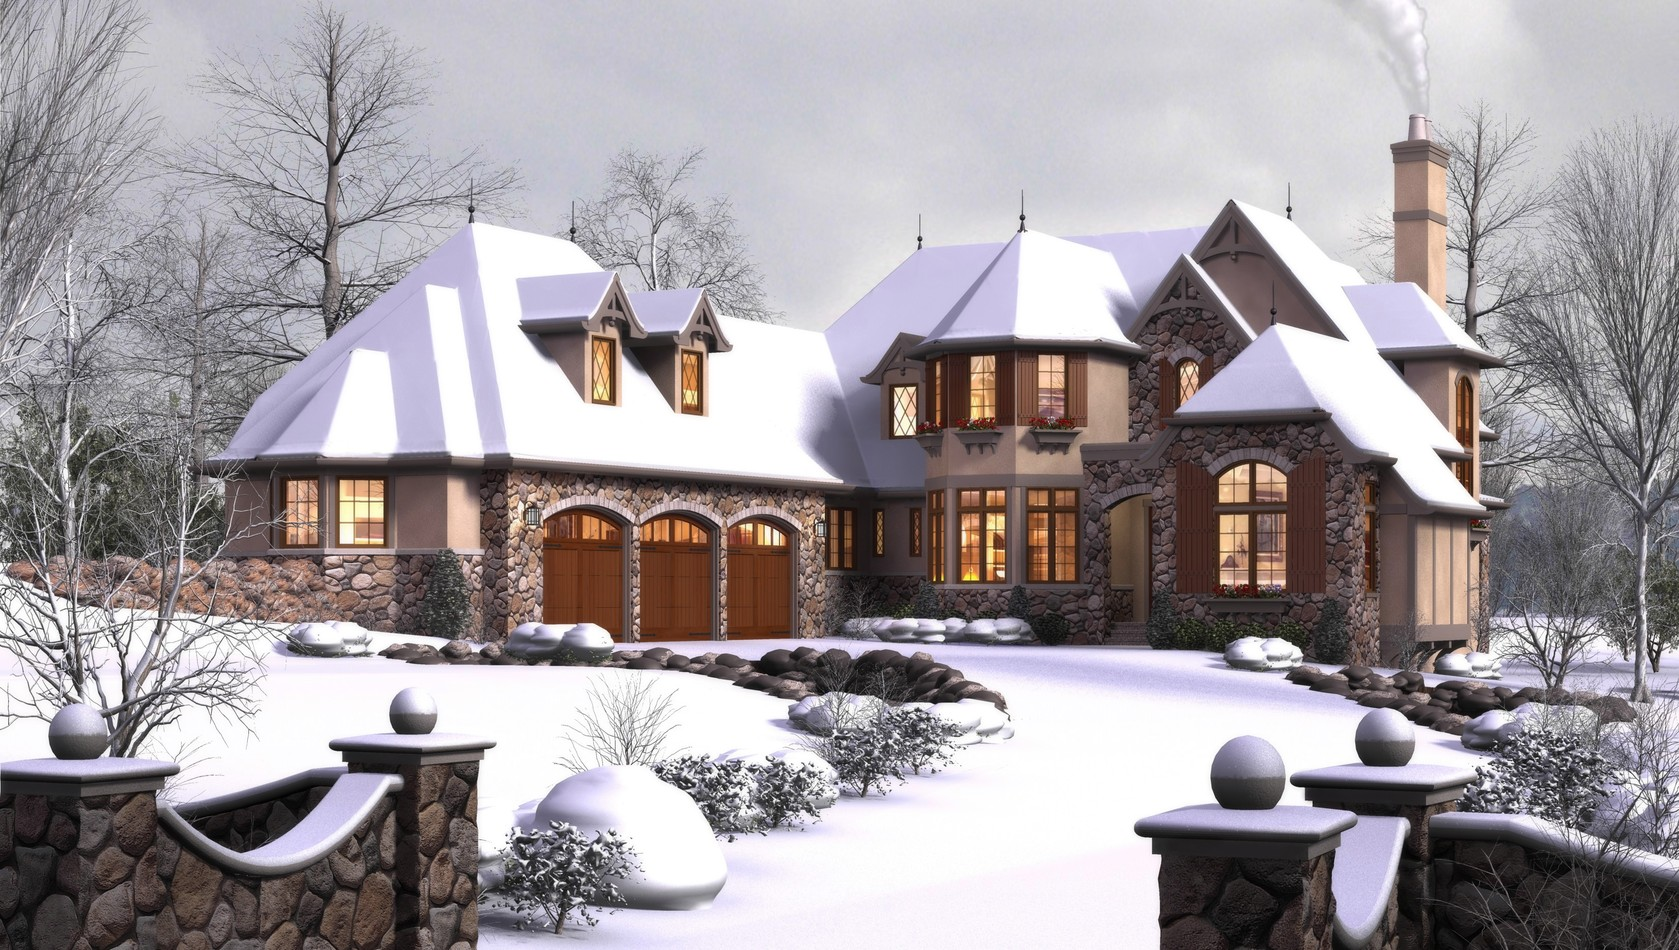 Main image for house plan 2470: The Rivendell Manor